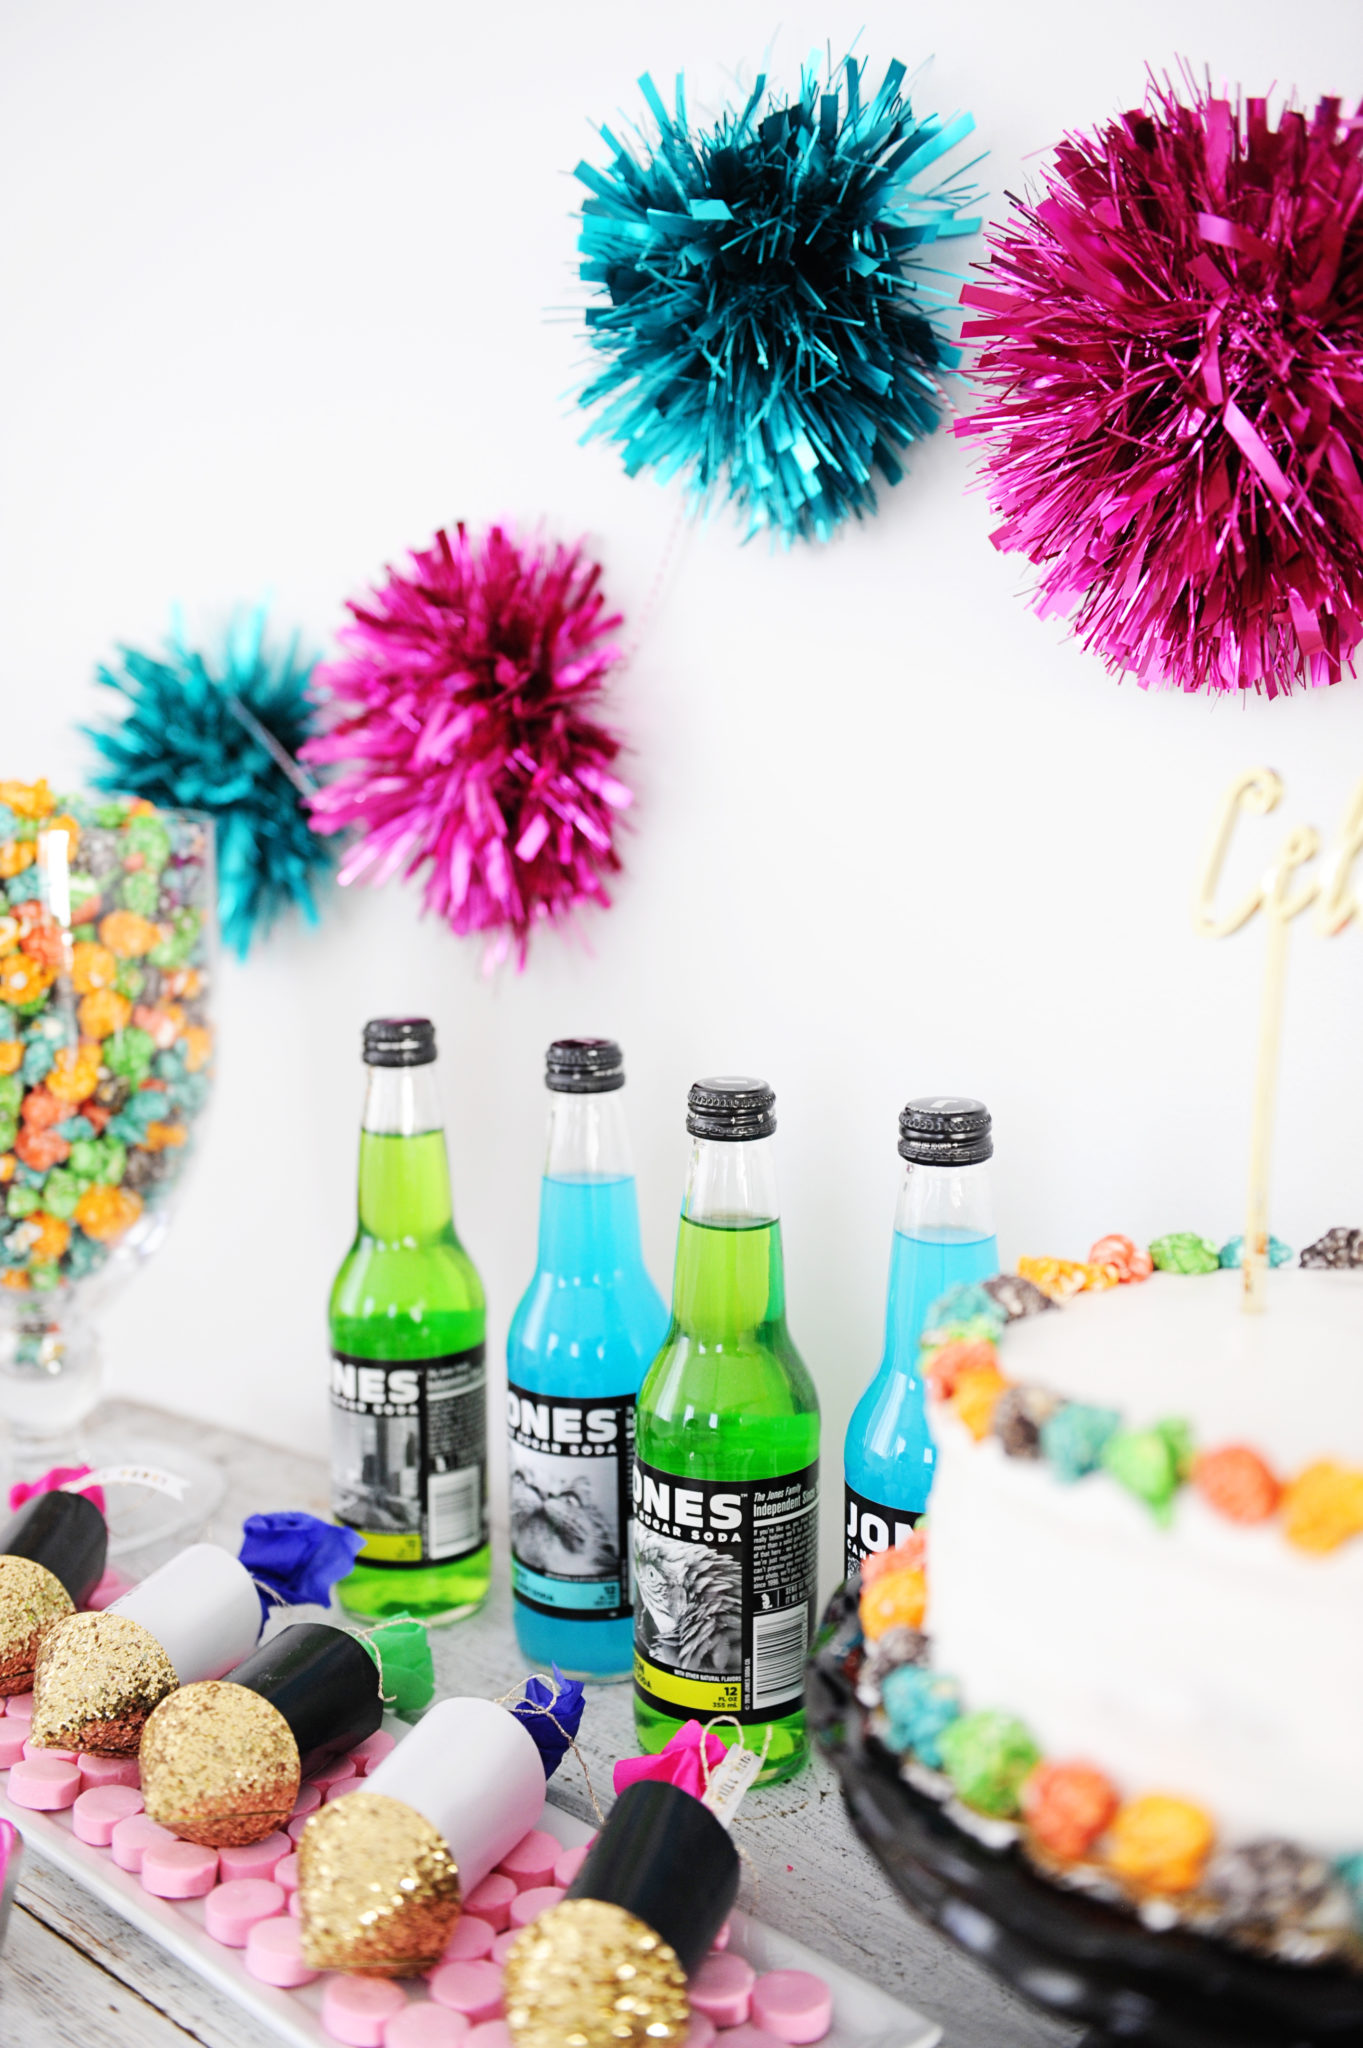 pop clink fizz new year's eve party